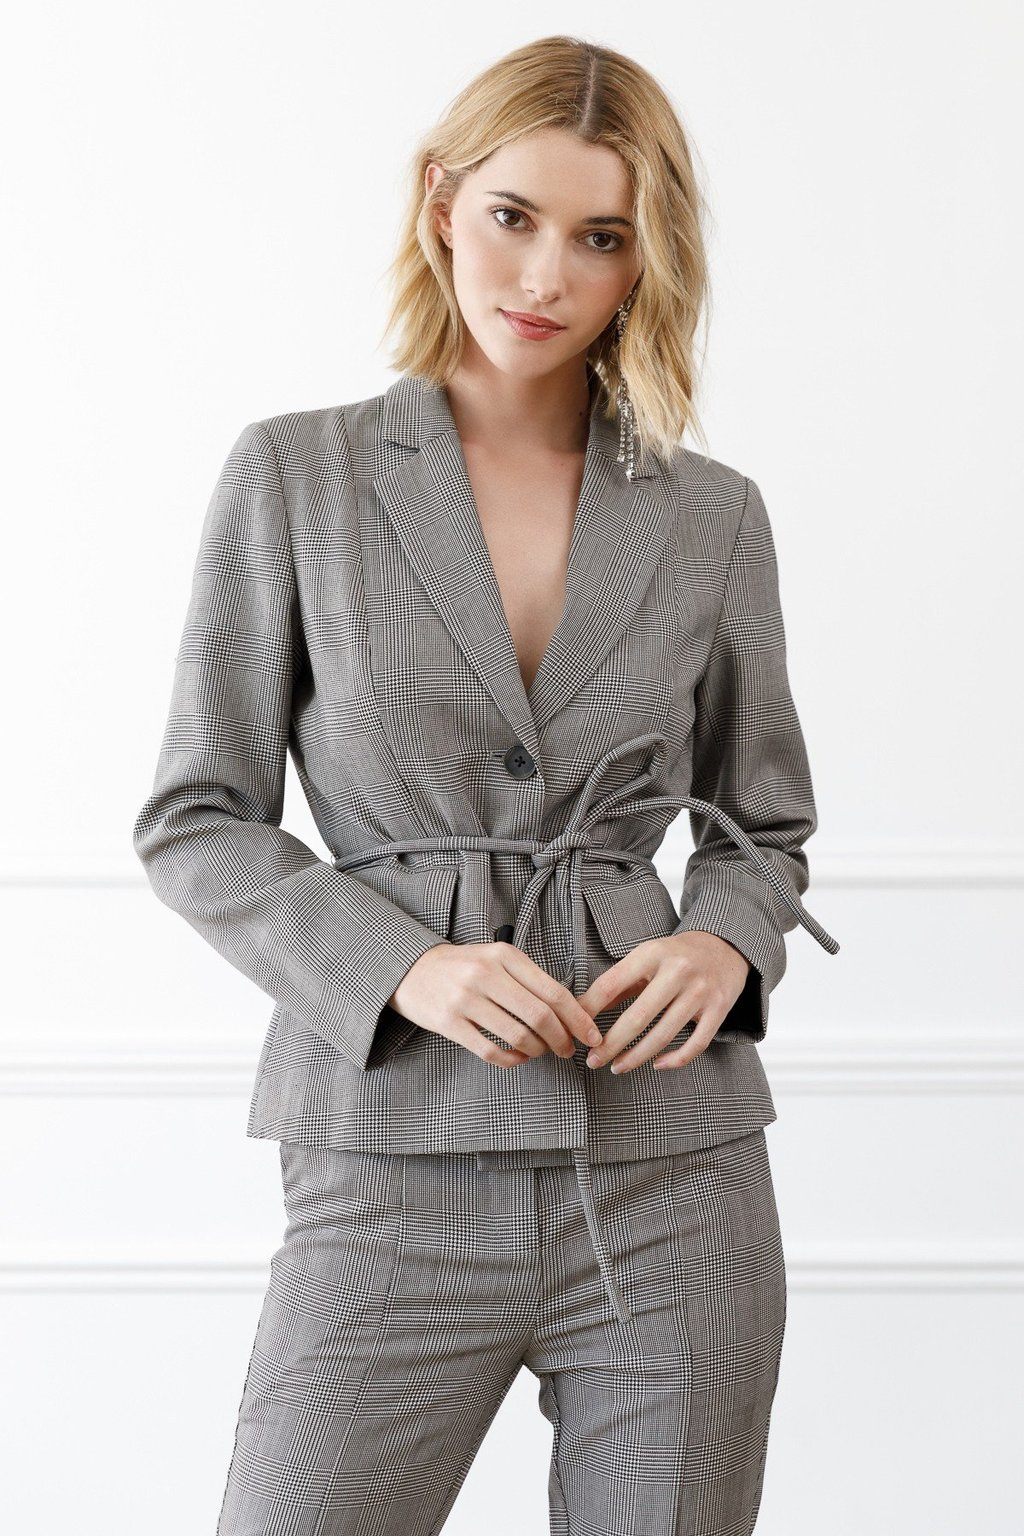 Kaylee Blazer suit Co-ord Set for women by J.ING women's fashion clothing